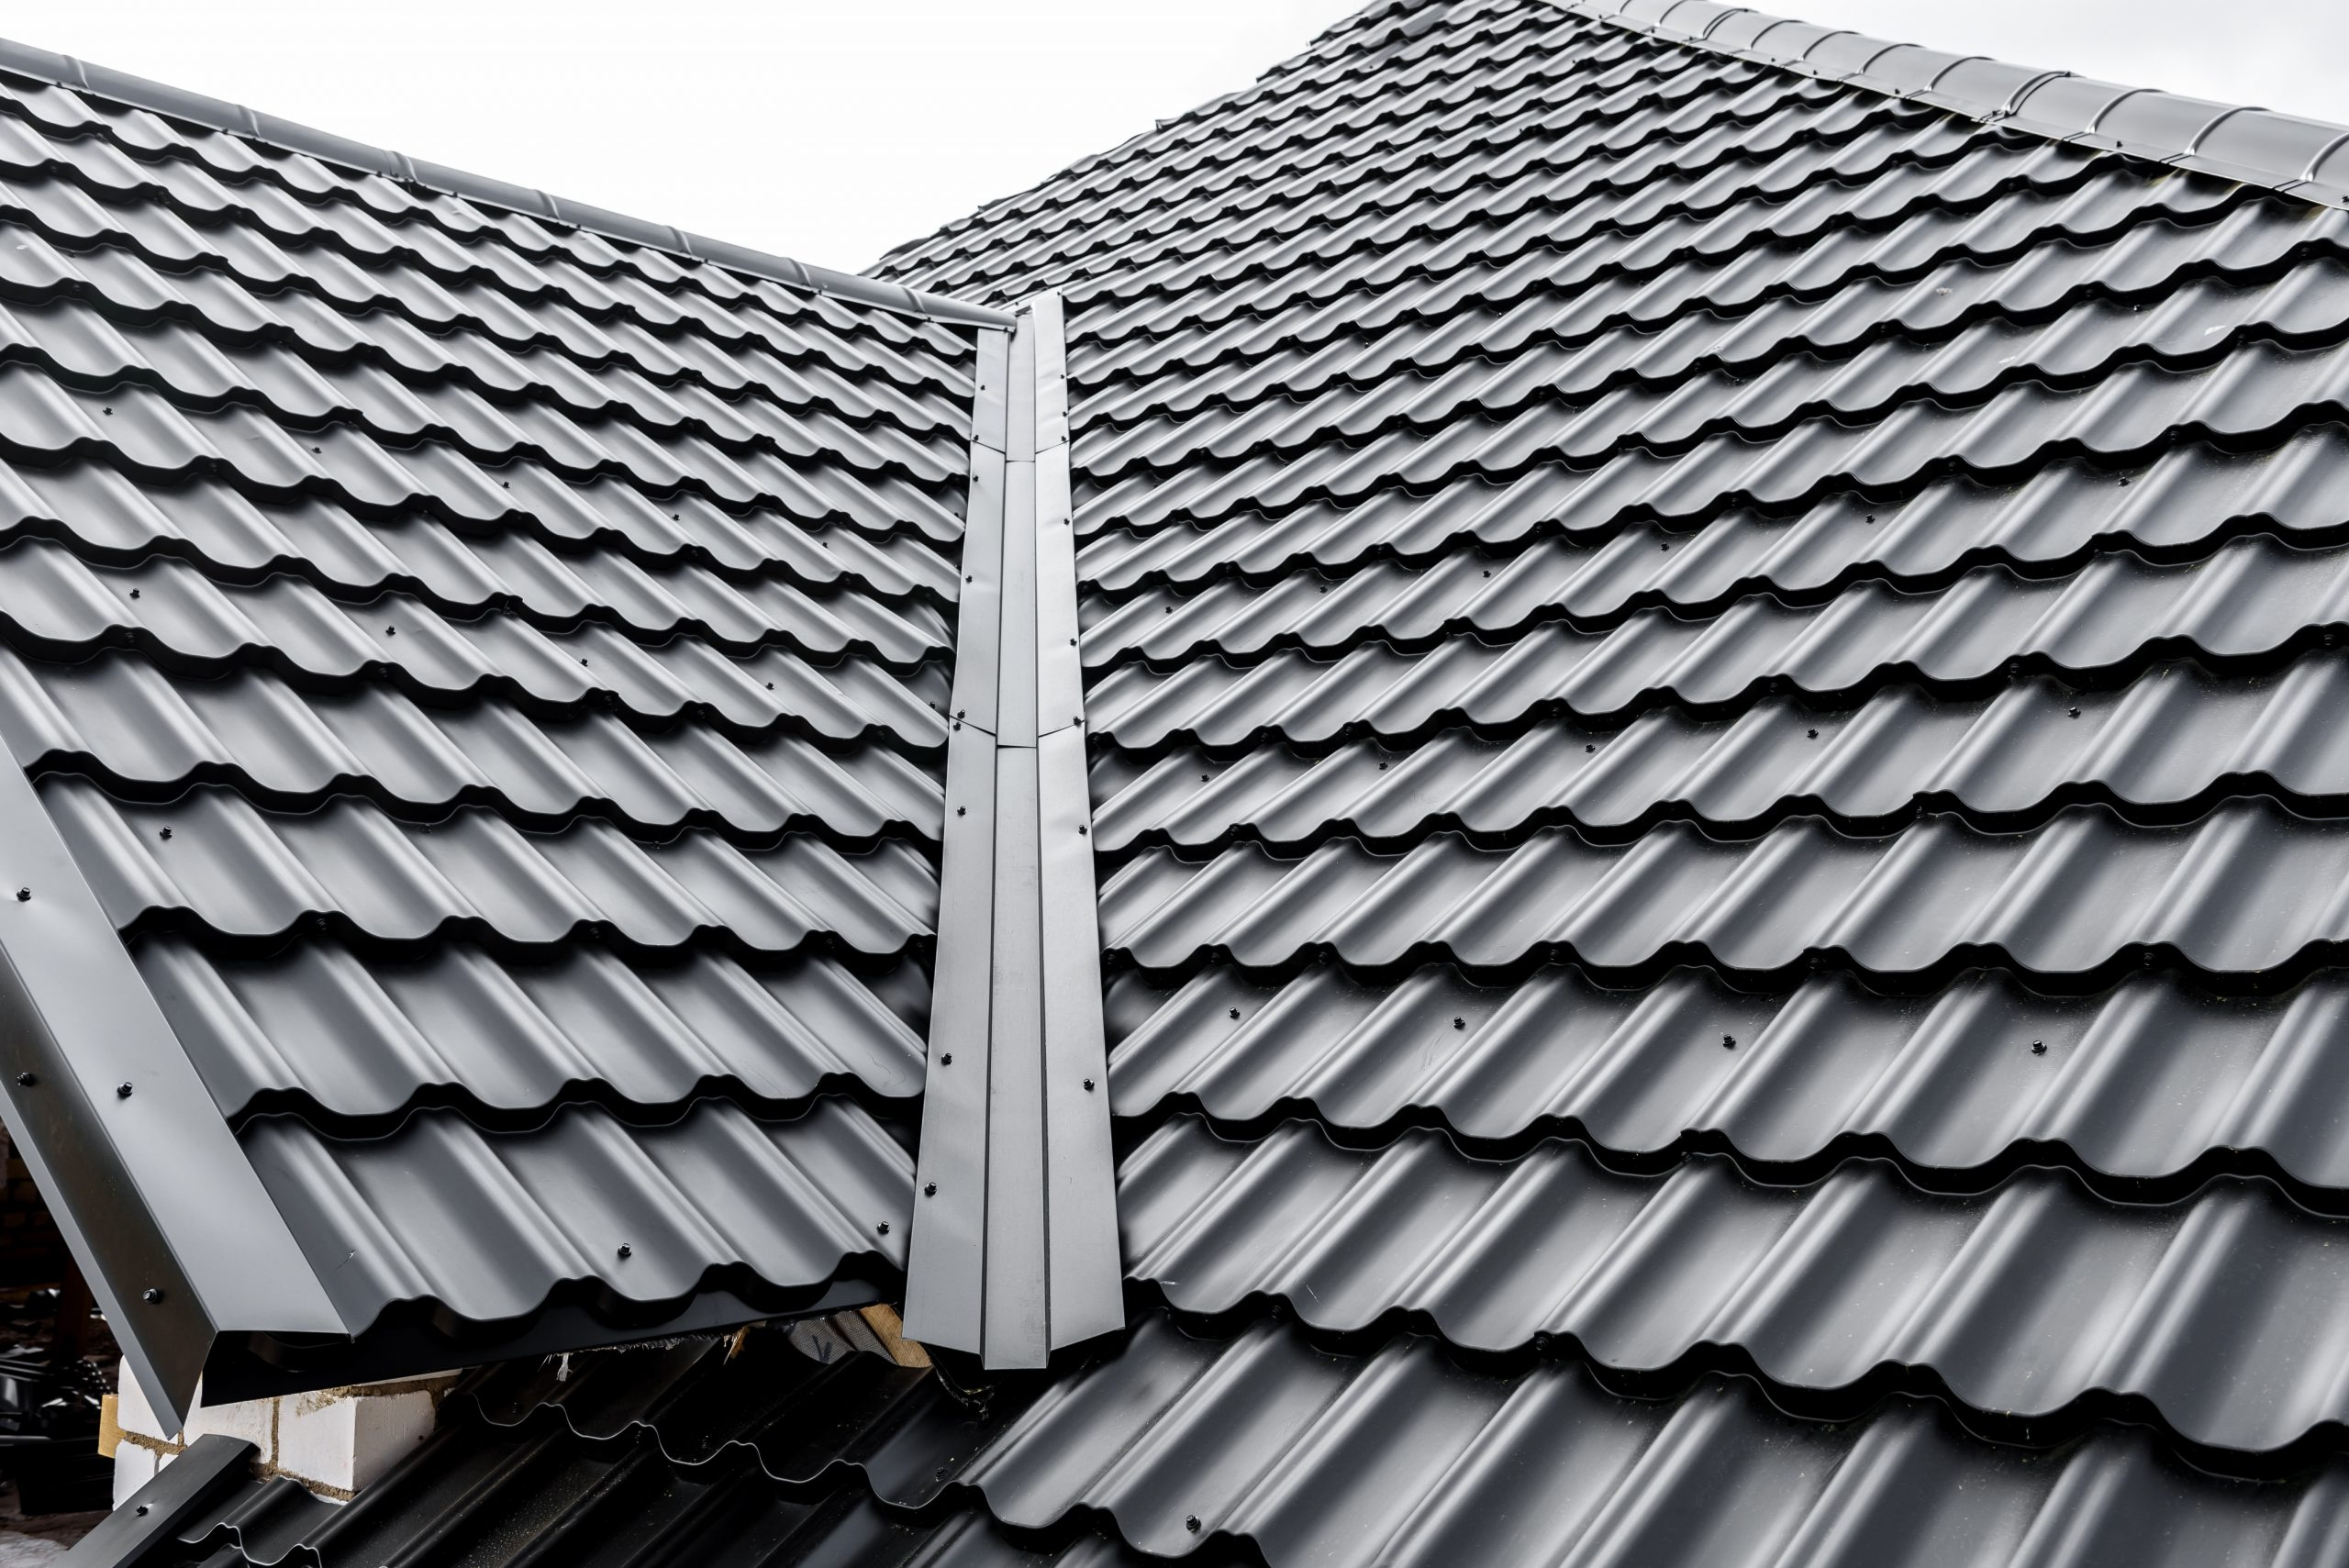 Metal tiles roofing